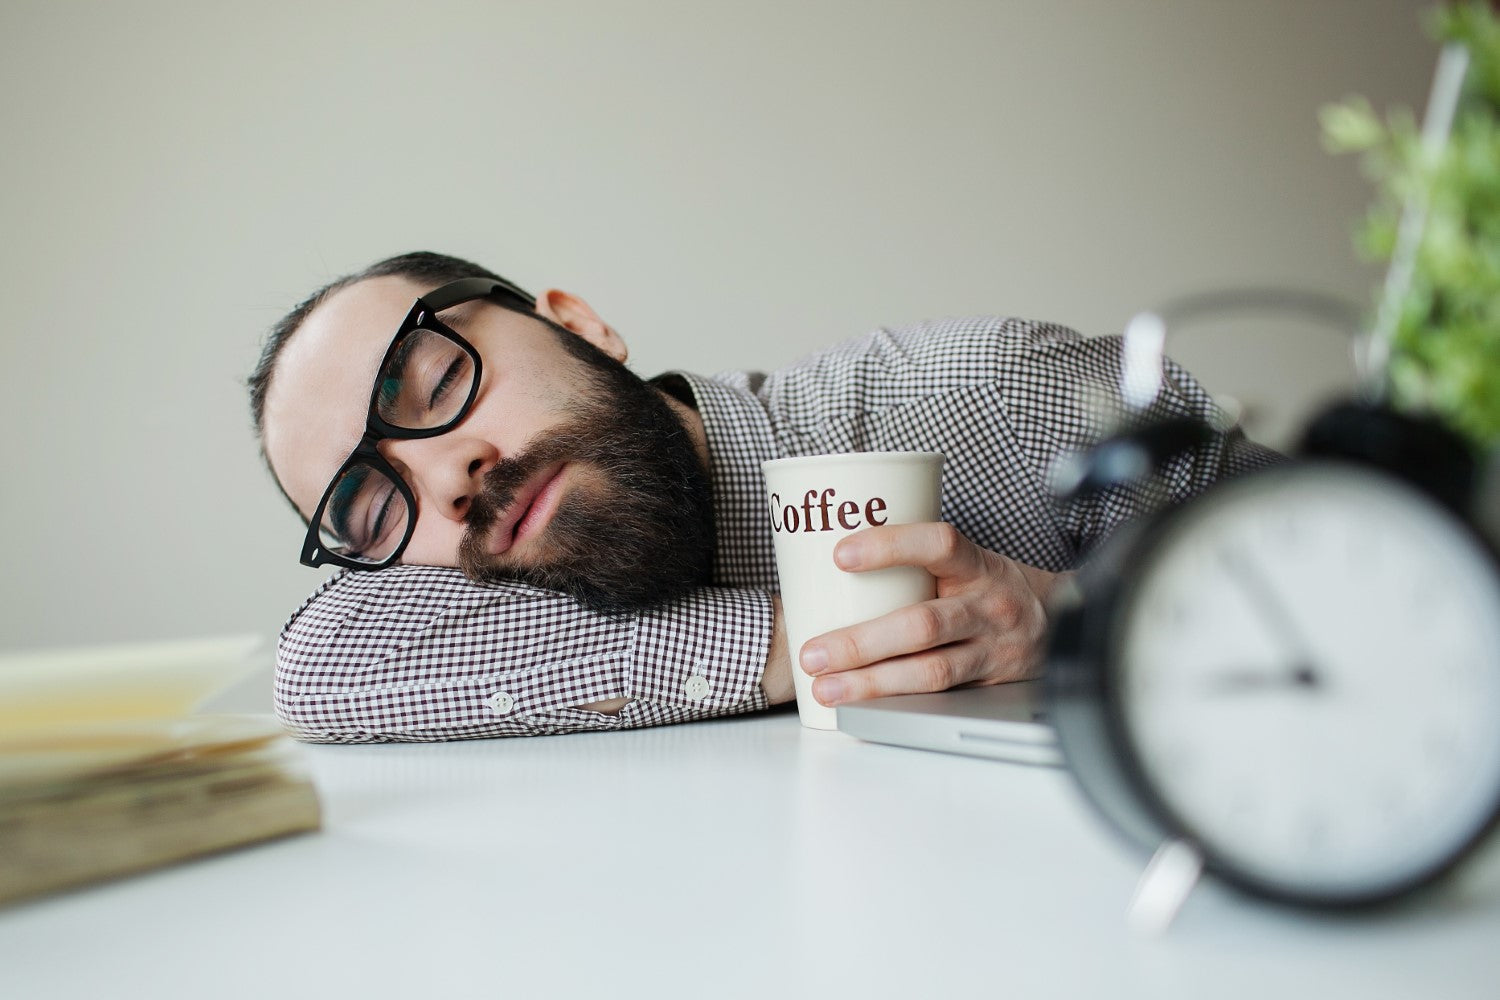 man sleeping while holding on a coffee